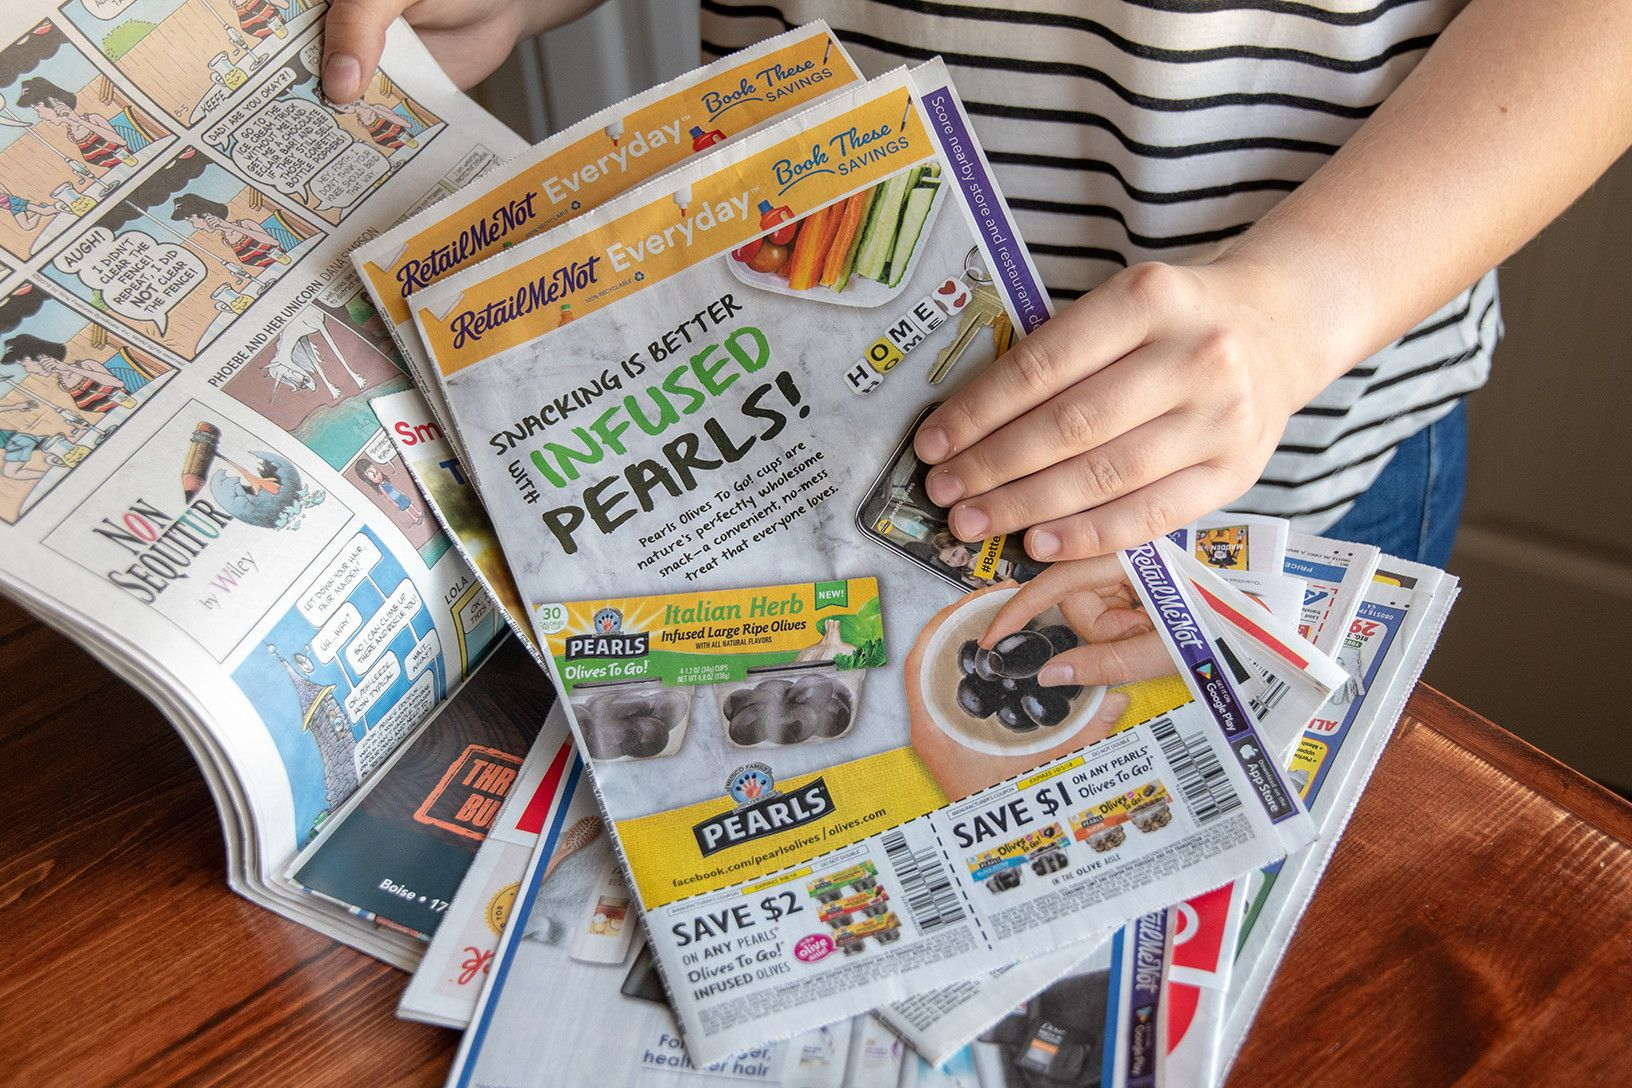 The Krazy Coupon Lady Sunday Newspaper Coupons Newspaper Coupon Sunday Newspaper